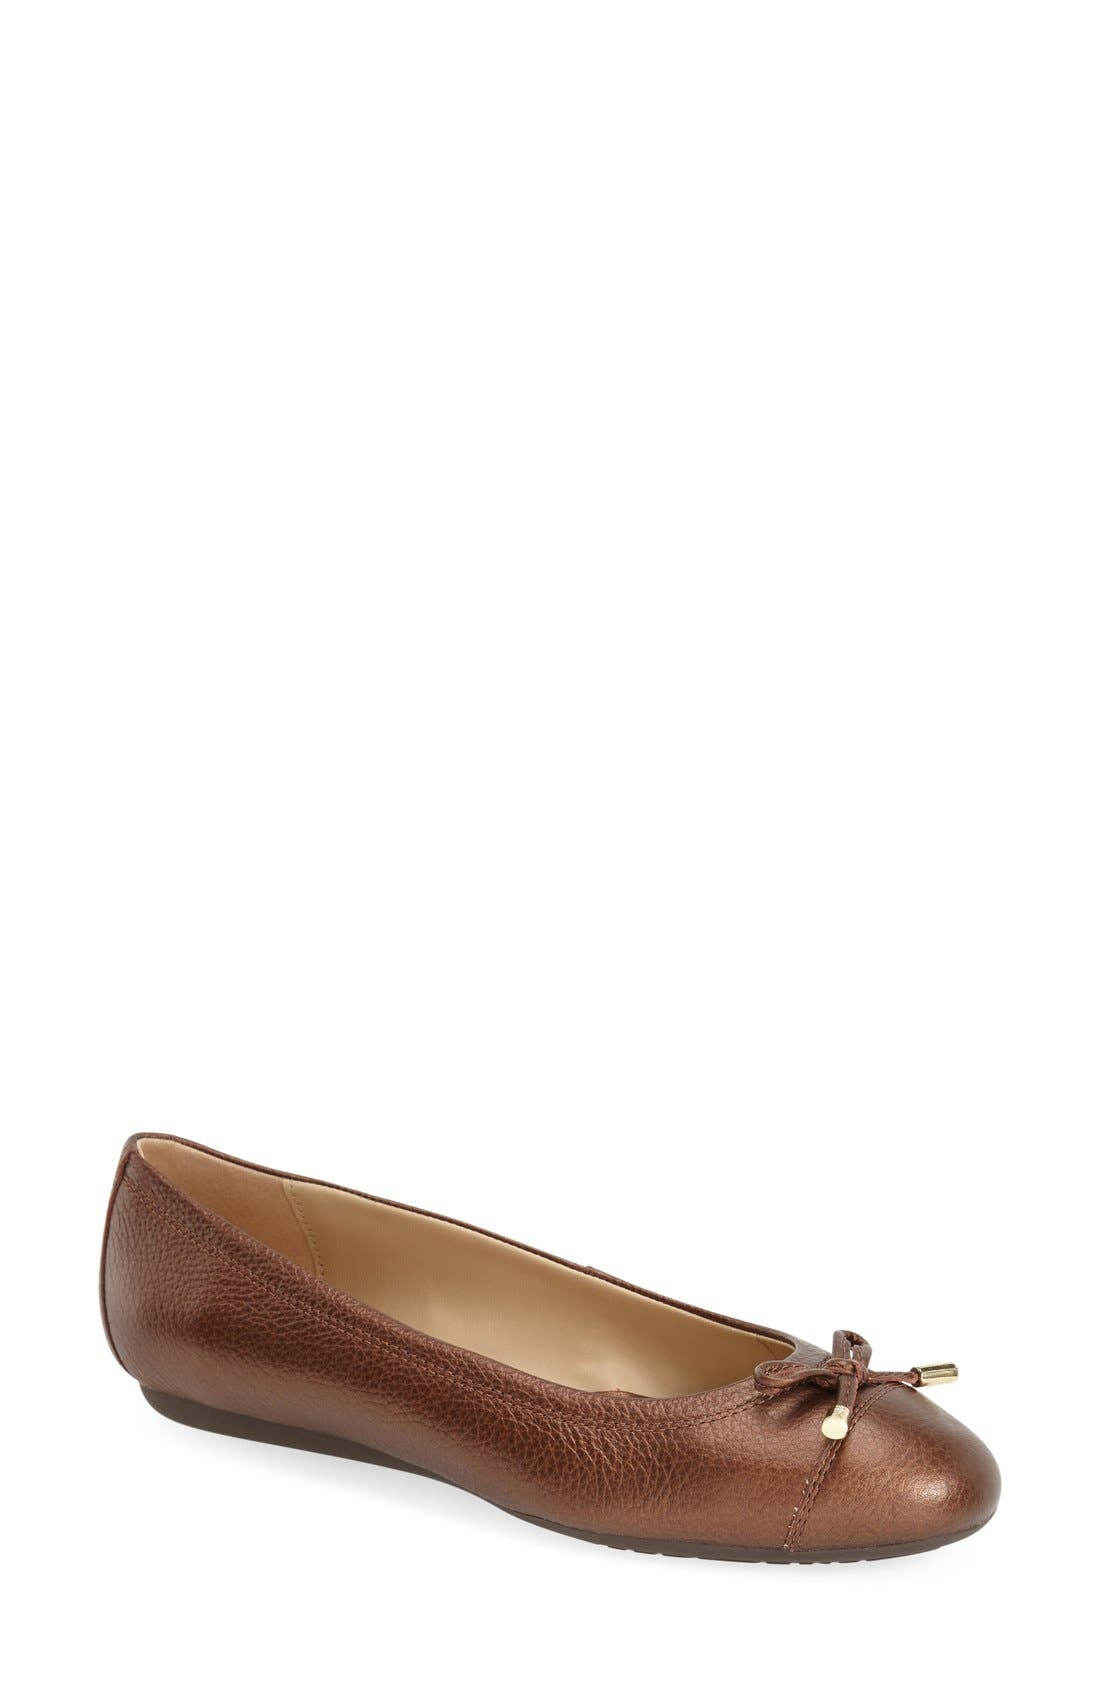 'Lola 16' Cap Toe Ballet Flat,                             Main thumbnail 3, color,